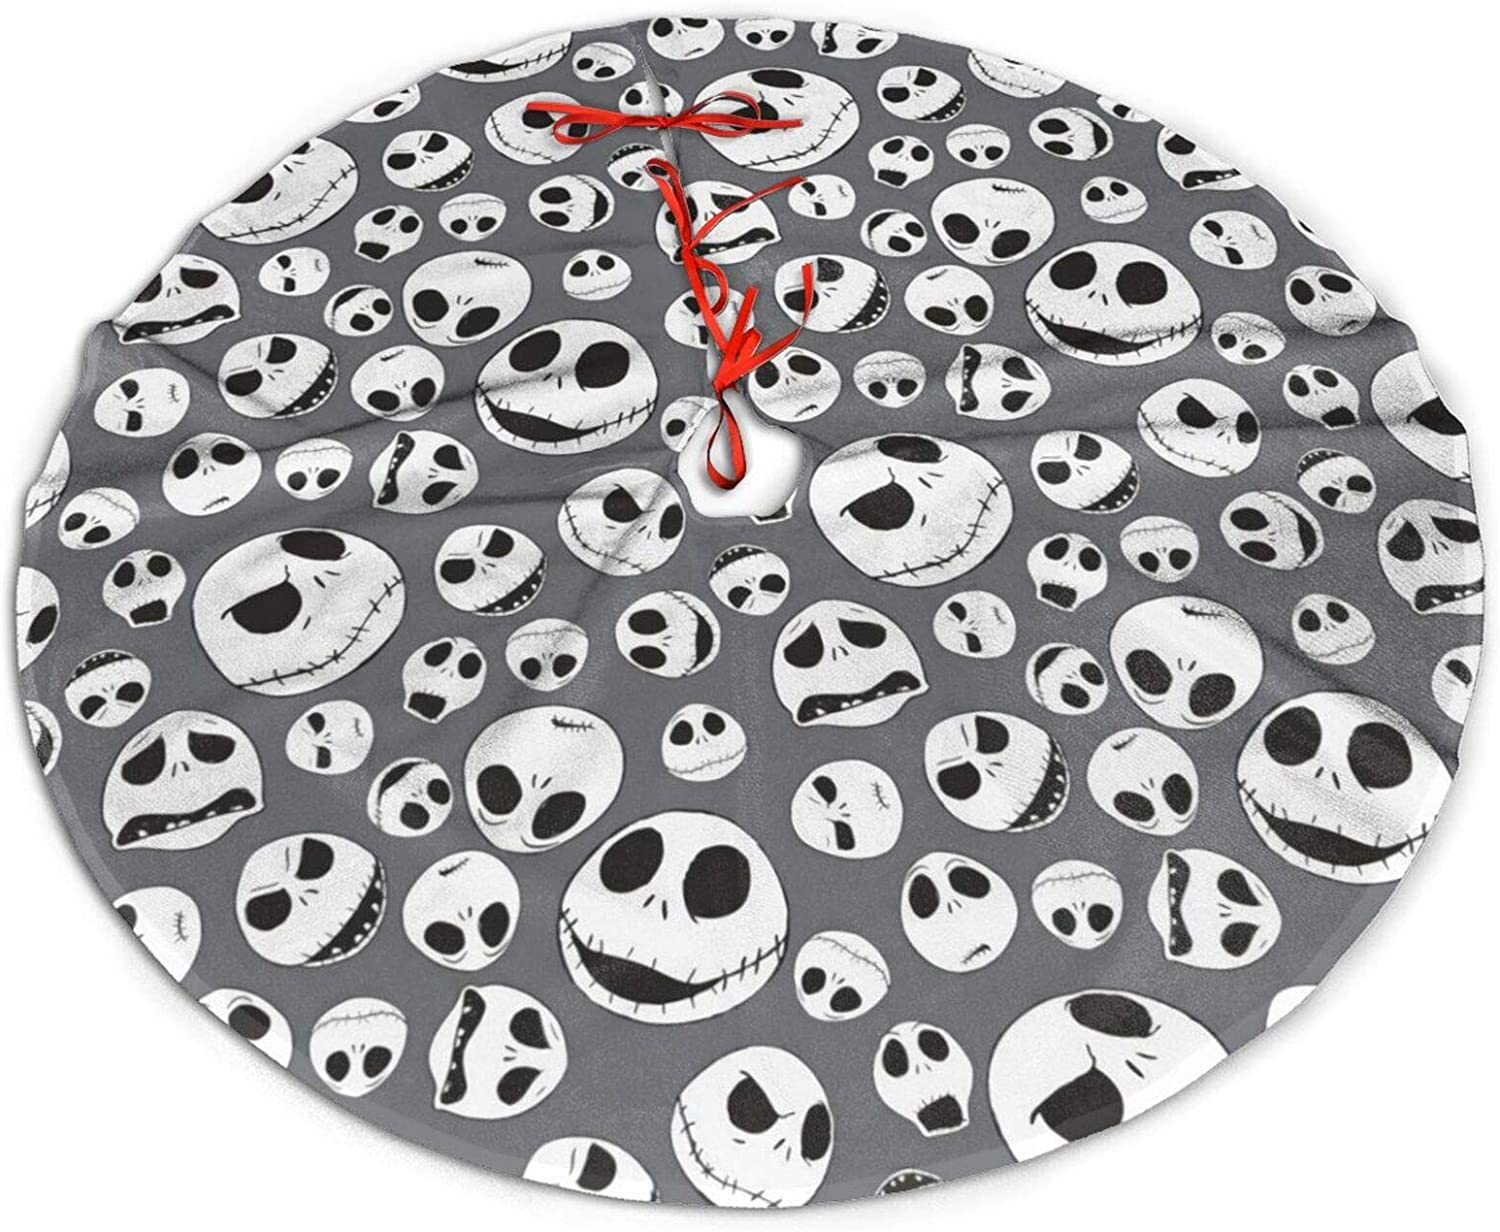 Newbealer The-Nightmare-Before-Christmas Tree Skirt for Xmas Holiday Party Supplies, Christmas Large Tree Mat Decorations, New Year House Decoration with Reindeer and Santa